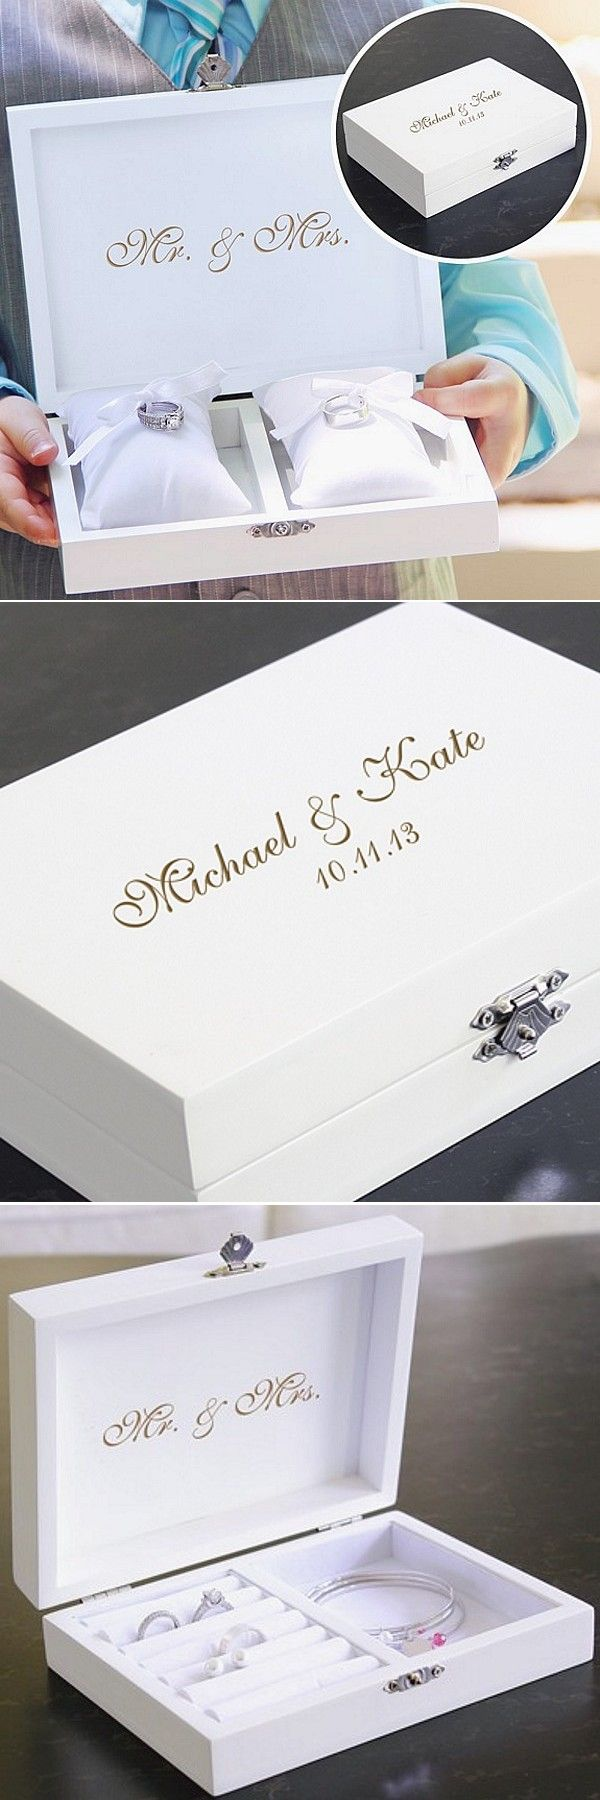 Looking for a unique alternative to using a ring pillow to present your rings during the wedding ceremony? Consider a wedding ring box personalized with the bride and groom's first name and wedding date. After the wedding the ring box becomes a lasting souvenir and a useful ring and jewelry box to use every day. This ring box can be ordered at http://myweddingreceptionideas.com/personalized-ring-bearer-pillow-keepsake-box.asp